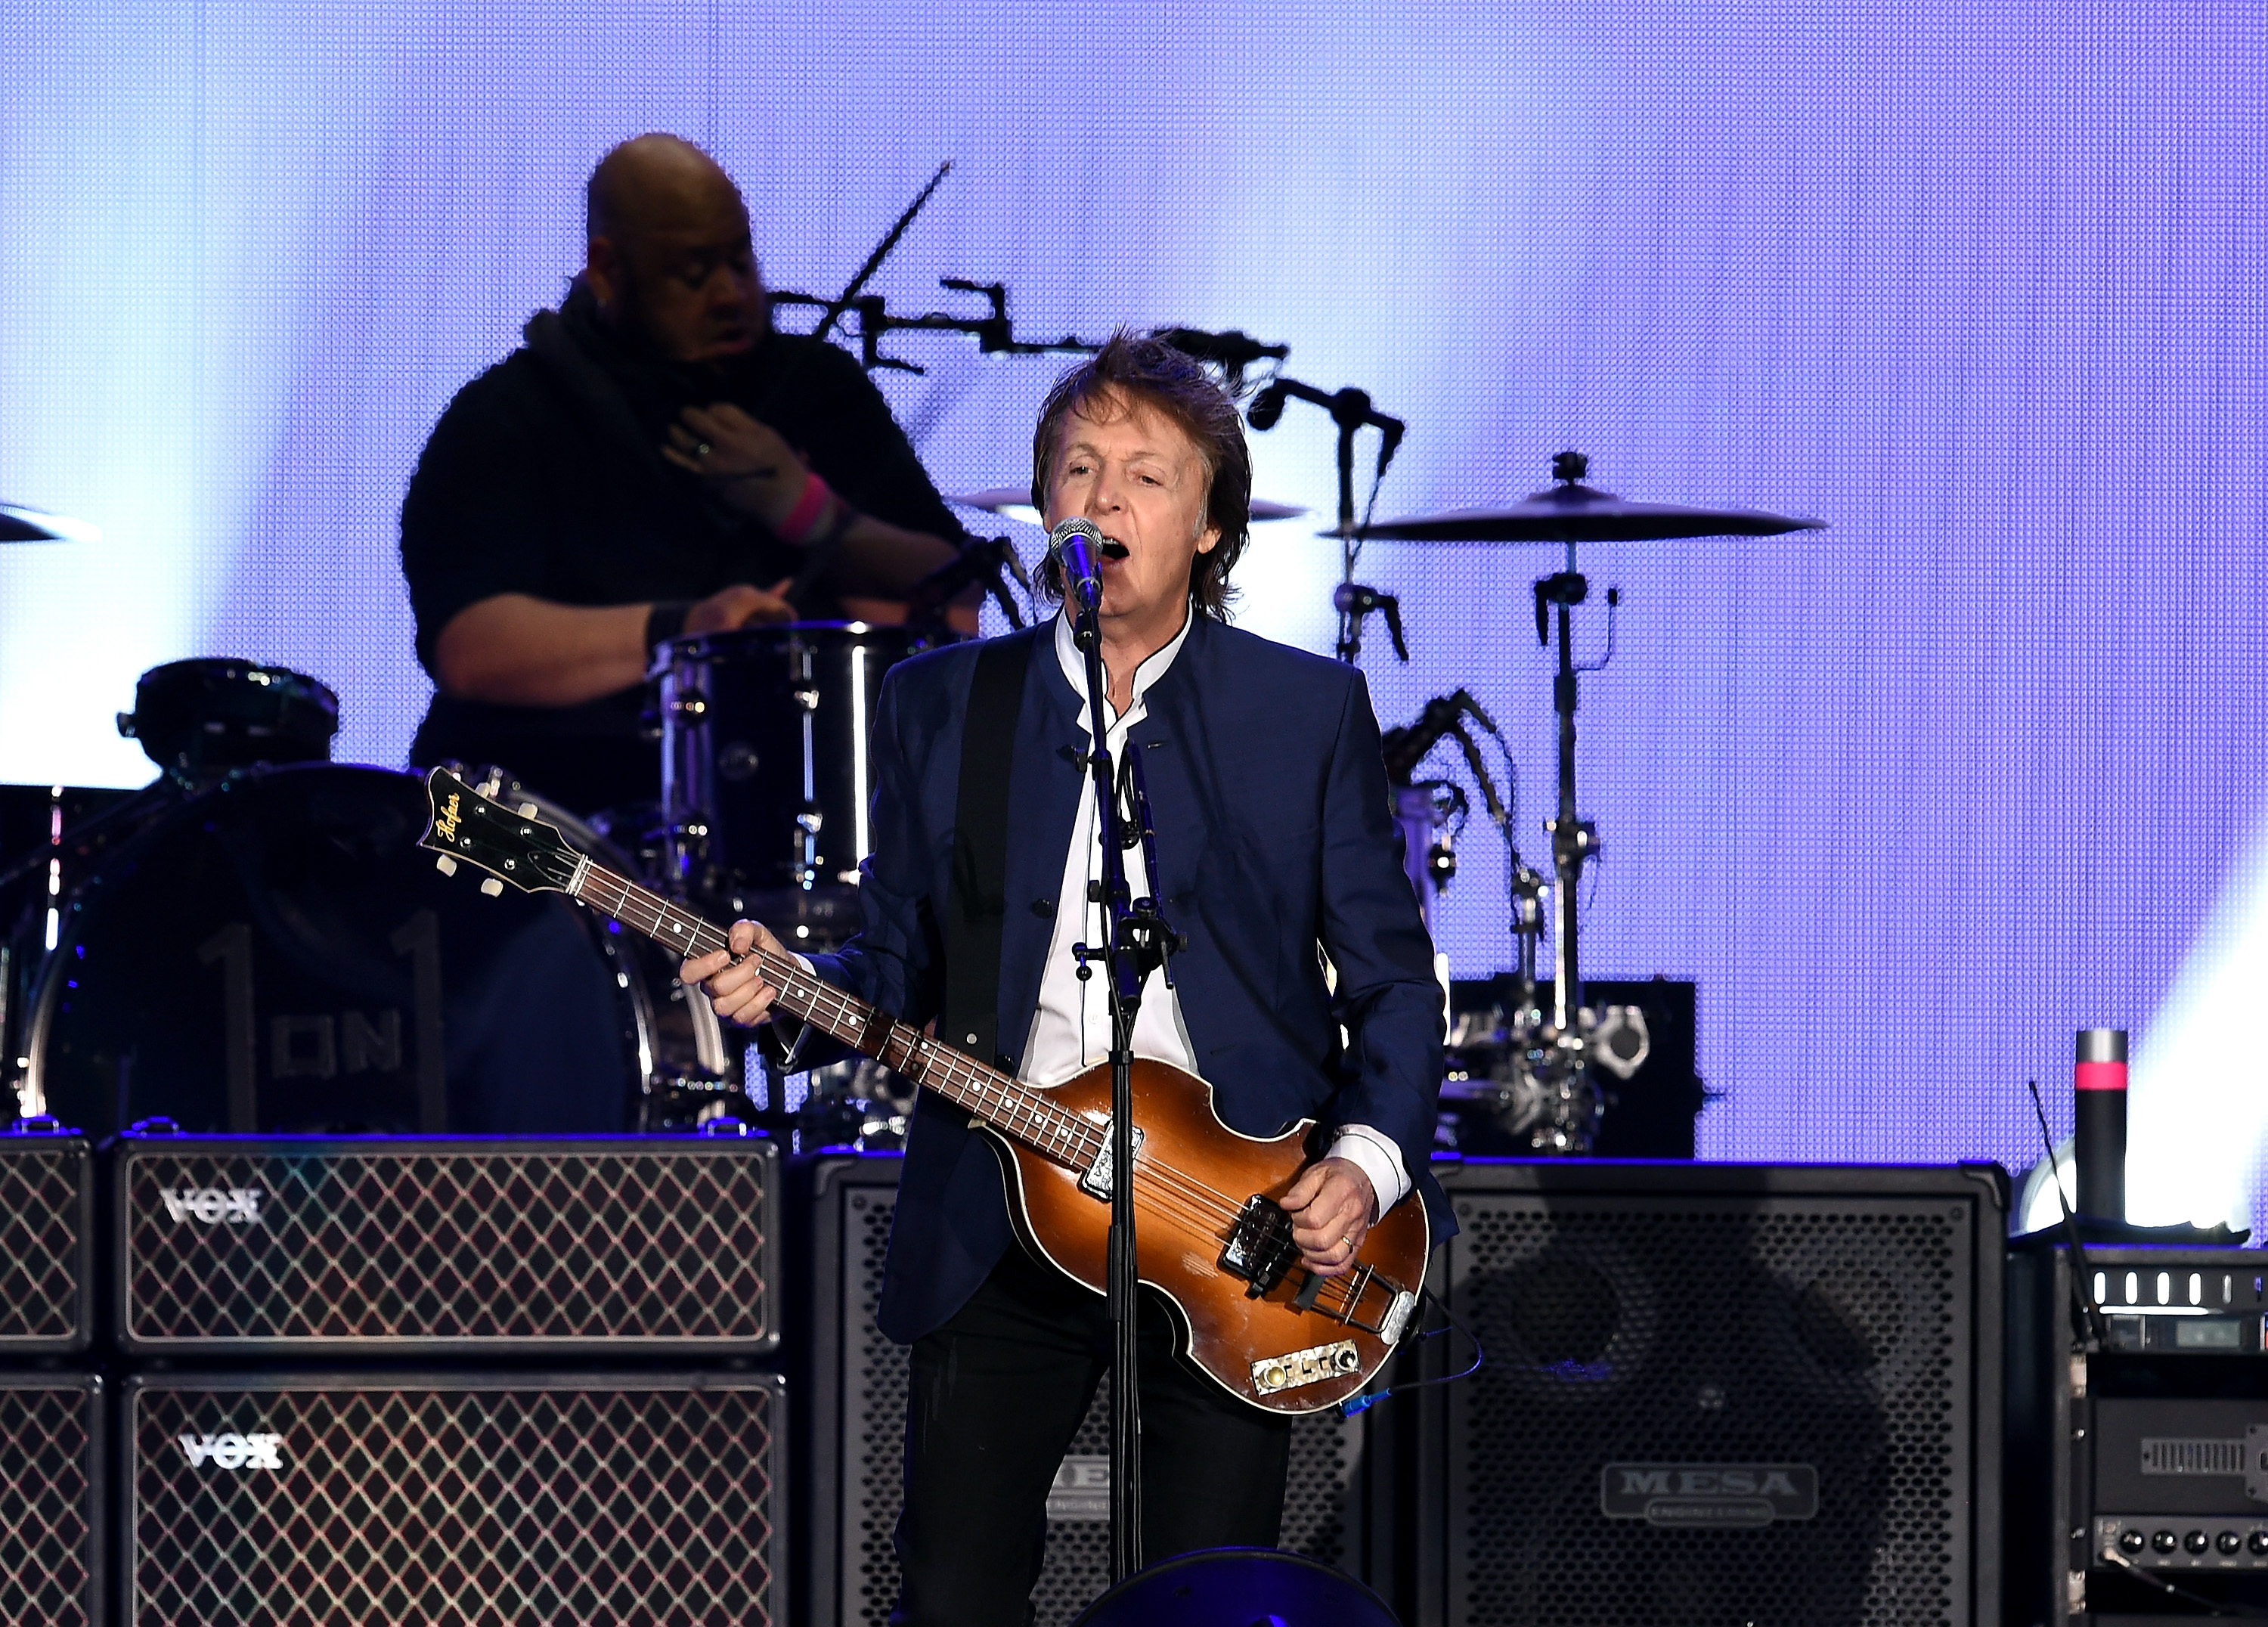 Paul-McCartney-Files-Lawsuit-Against-SonyATV-Over-Copyright